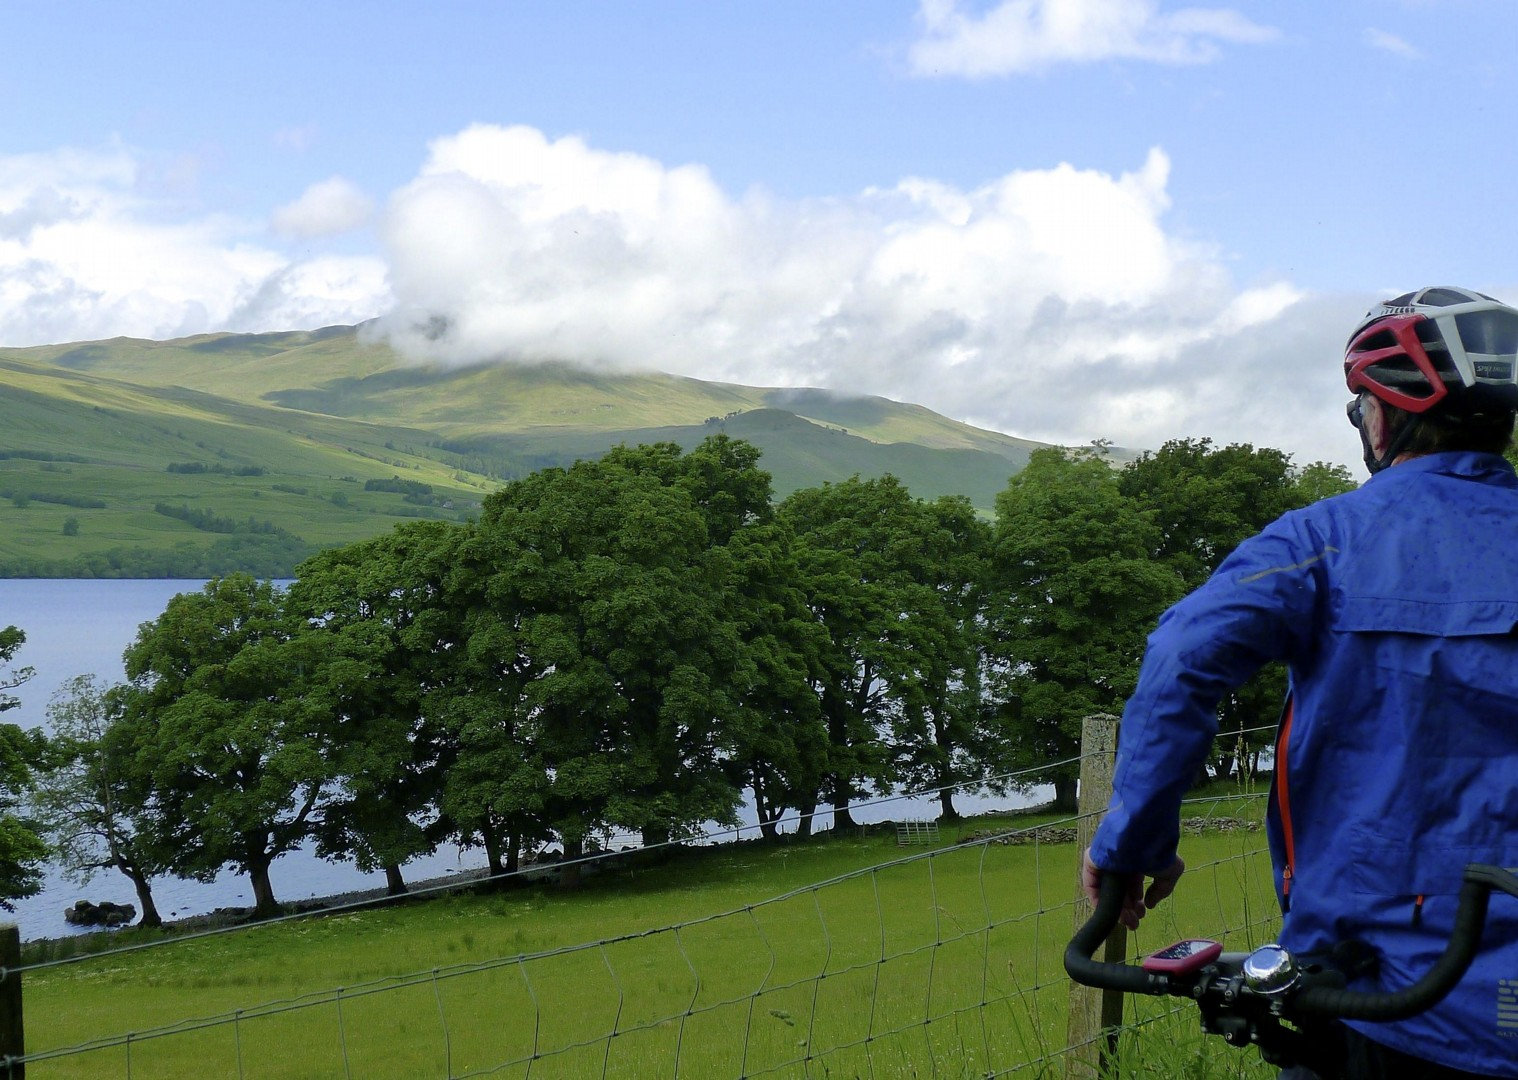 lochsandglens10.jpg - UK - Scotland - Lochs and Glens - Self-Guided Family Cycling Holiday - Family Cycling